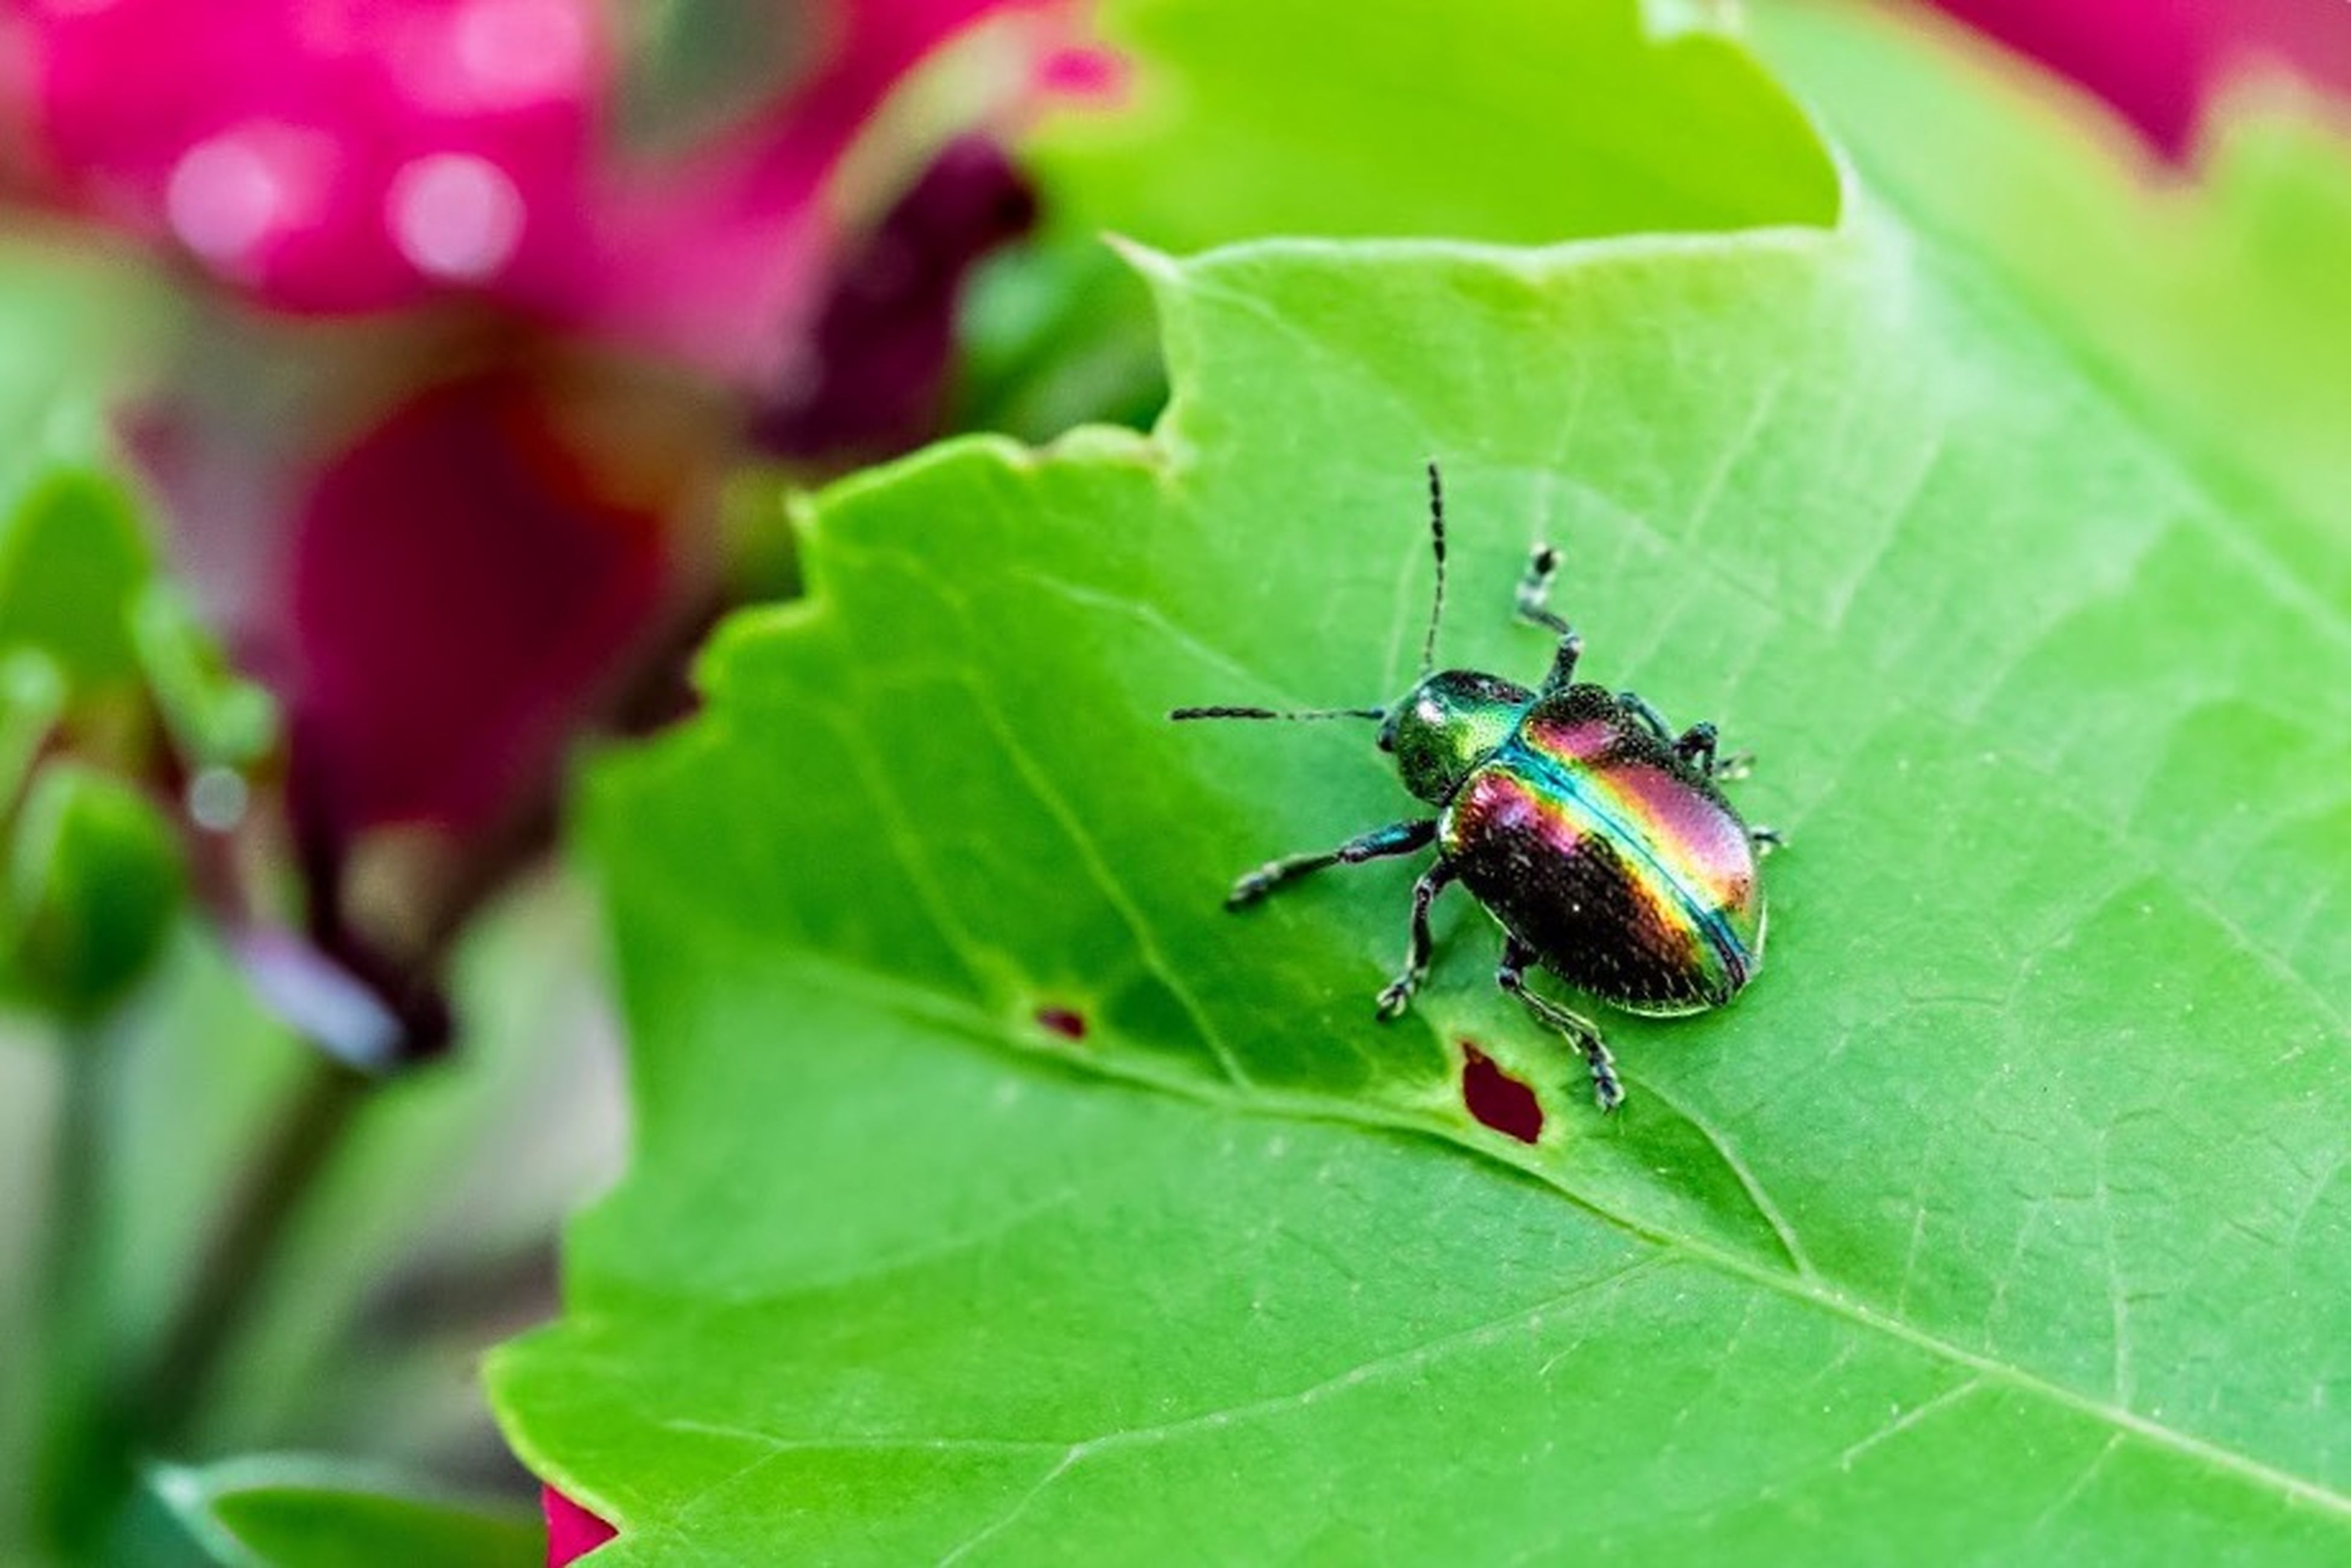 insect, one animal, animals in the wild, animal themes, wildlife, leaf, close-up, green color, focus on foreground, selective focus, plant, nature, two animals, day, ladybug, animal antenna, outdoors, bug, no people, beetle